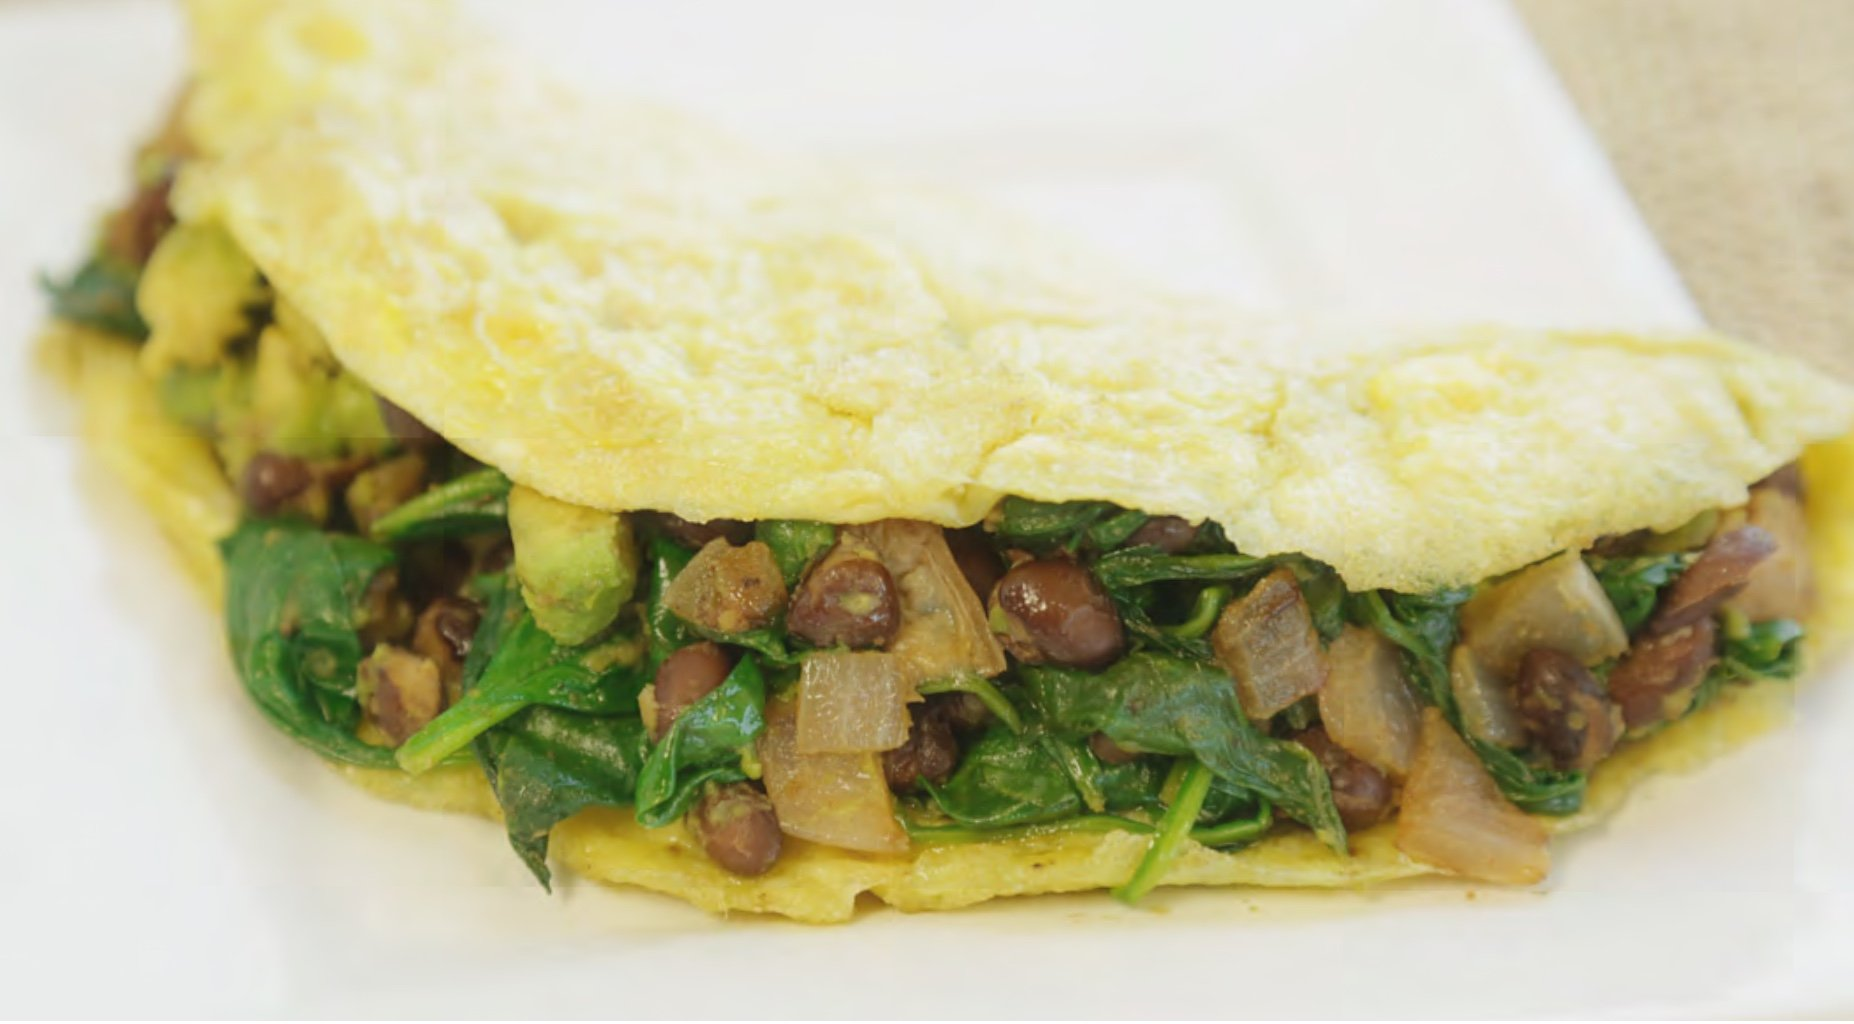 Southwestern Omelette Recipe (delicious and protein-packed!)